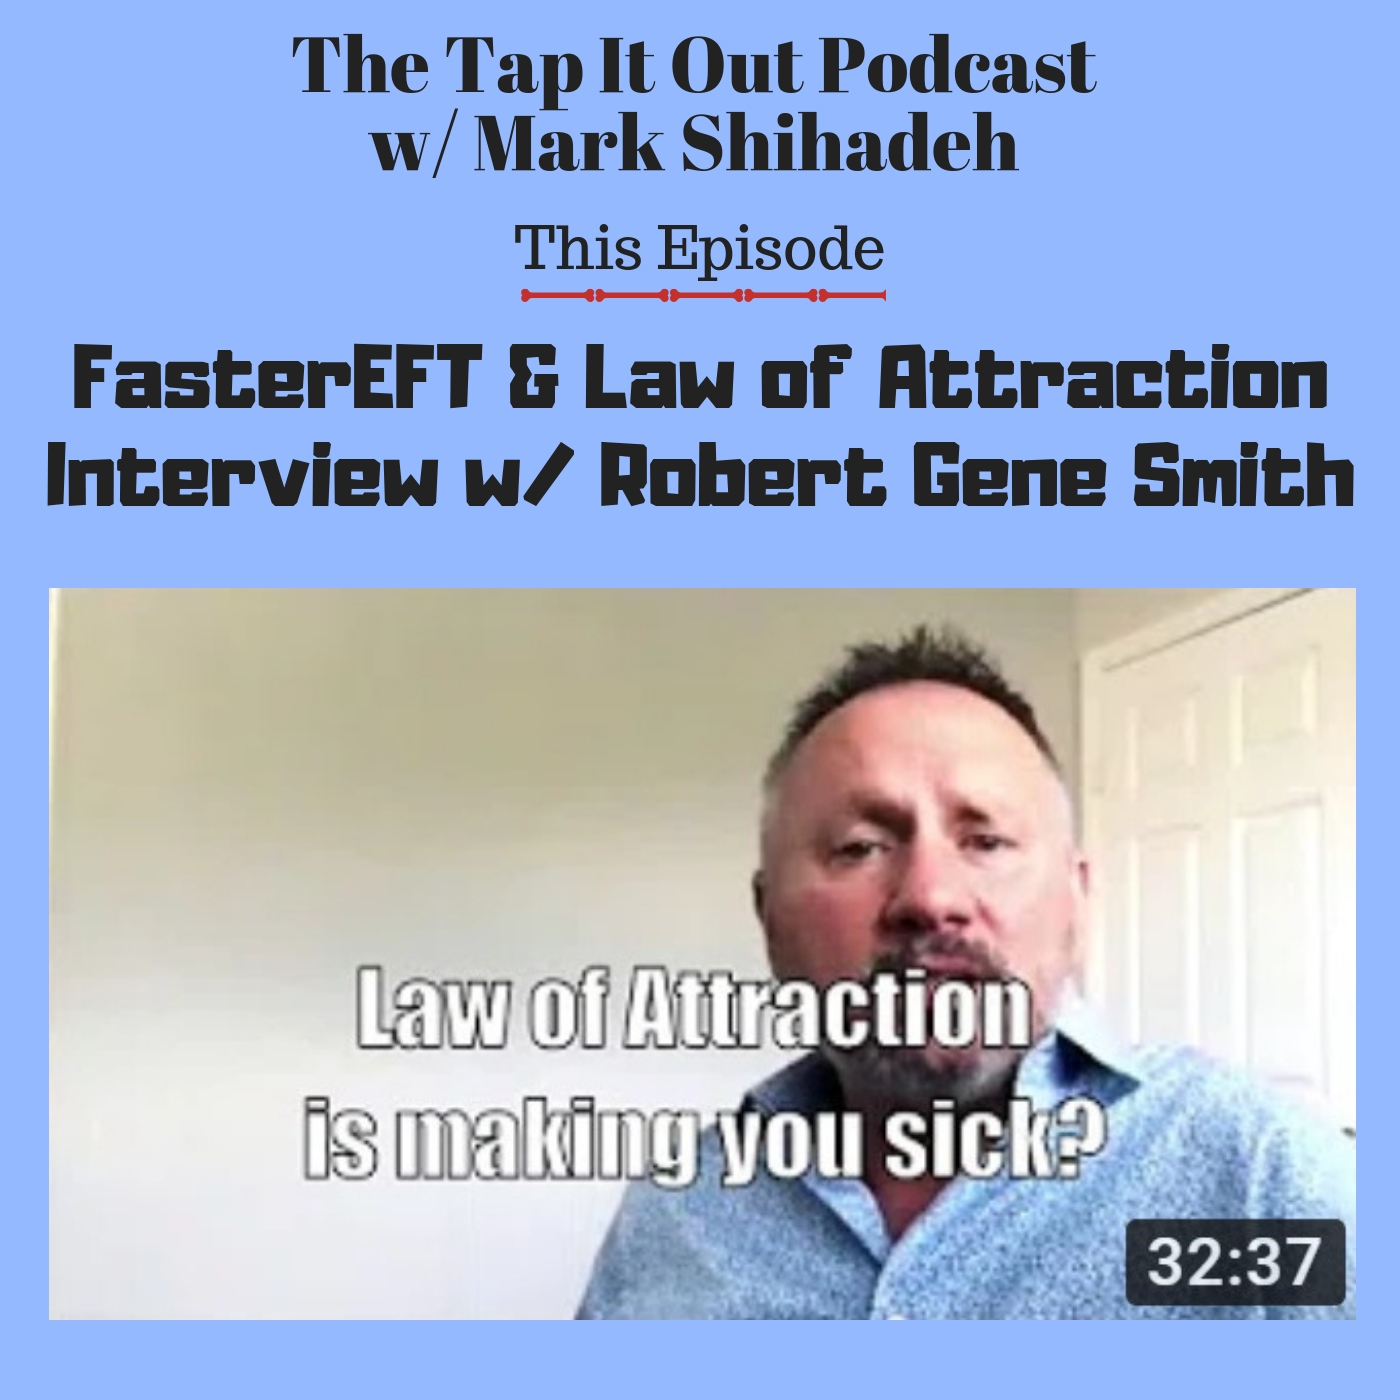 Ep 5: Interview w/ Robert Gene Smith on FasterEFT Tapping & Law of Attraction.